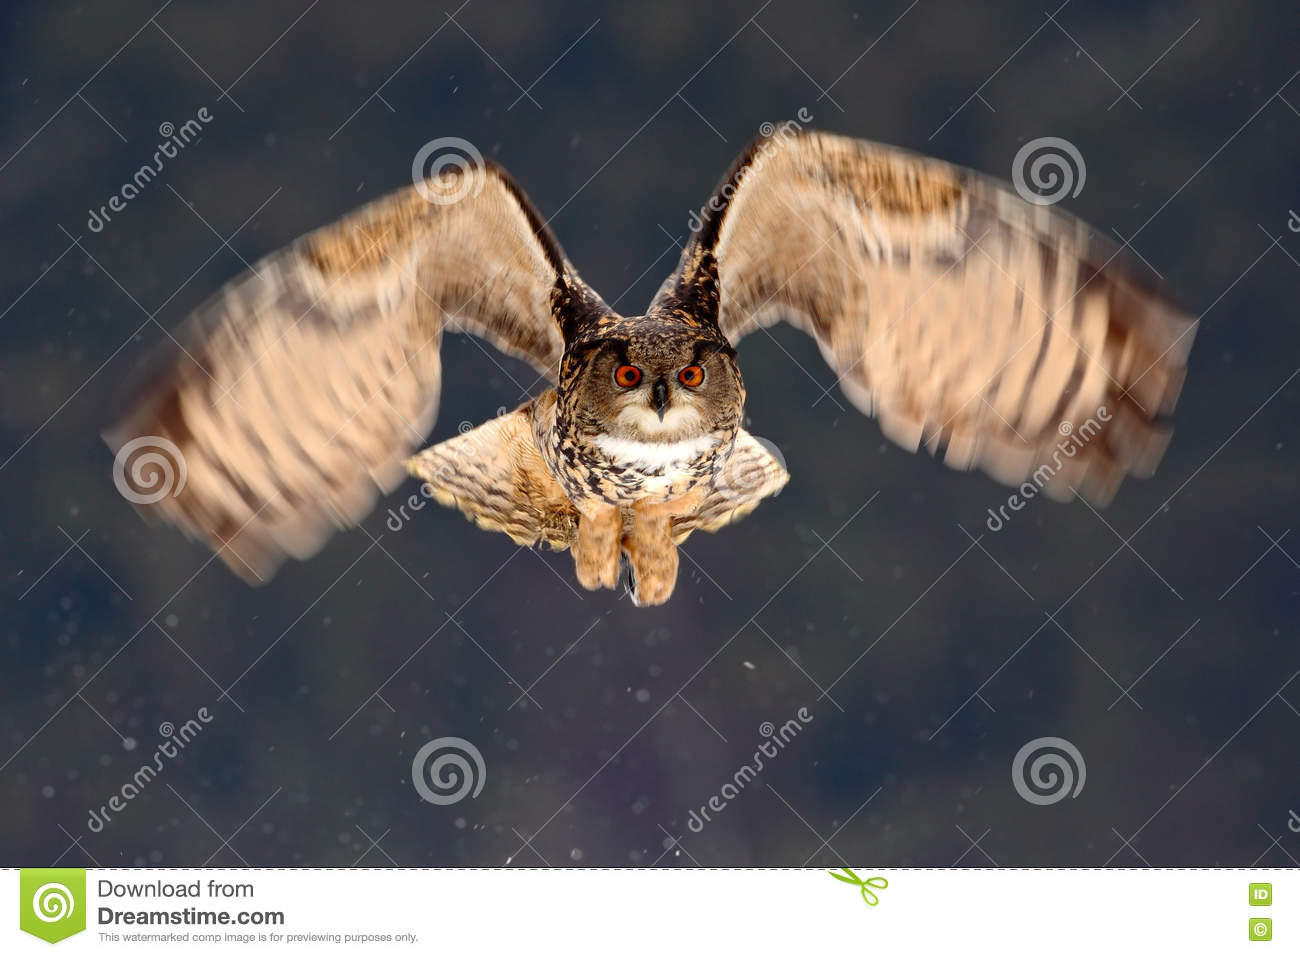 Eurasian Eagle Owl fly hunting during winter surrounded with snowflakes, action flying scene with bird, animal in the nature habit